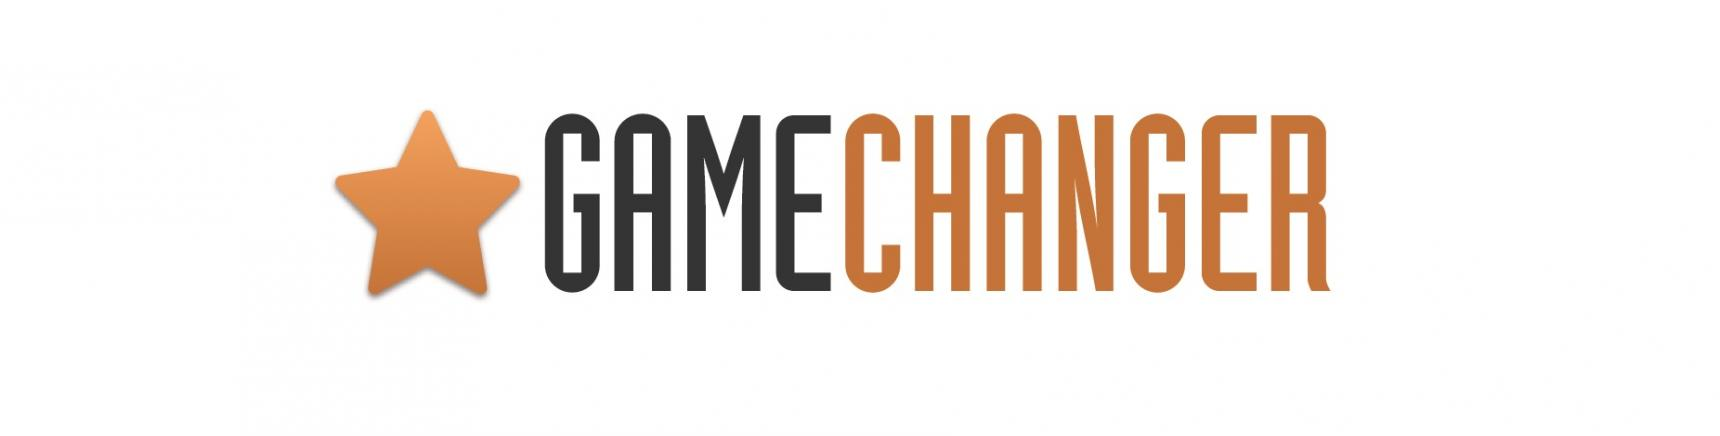 Dementia research GameChanger project